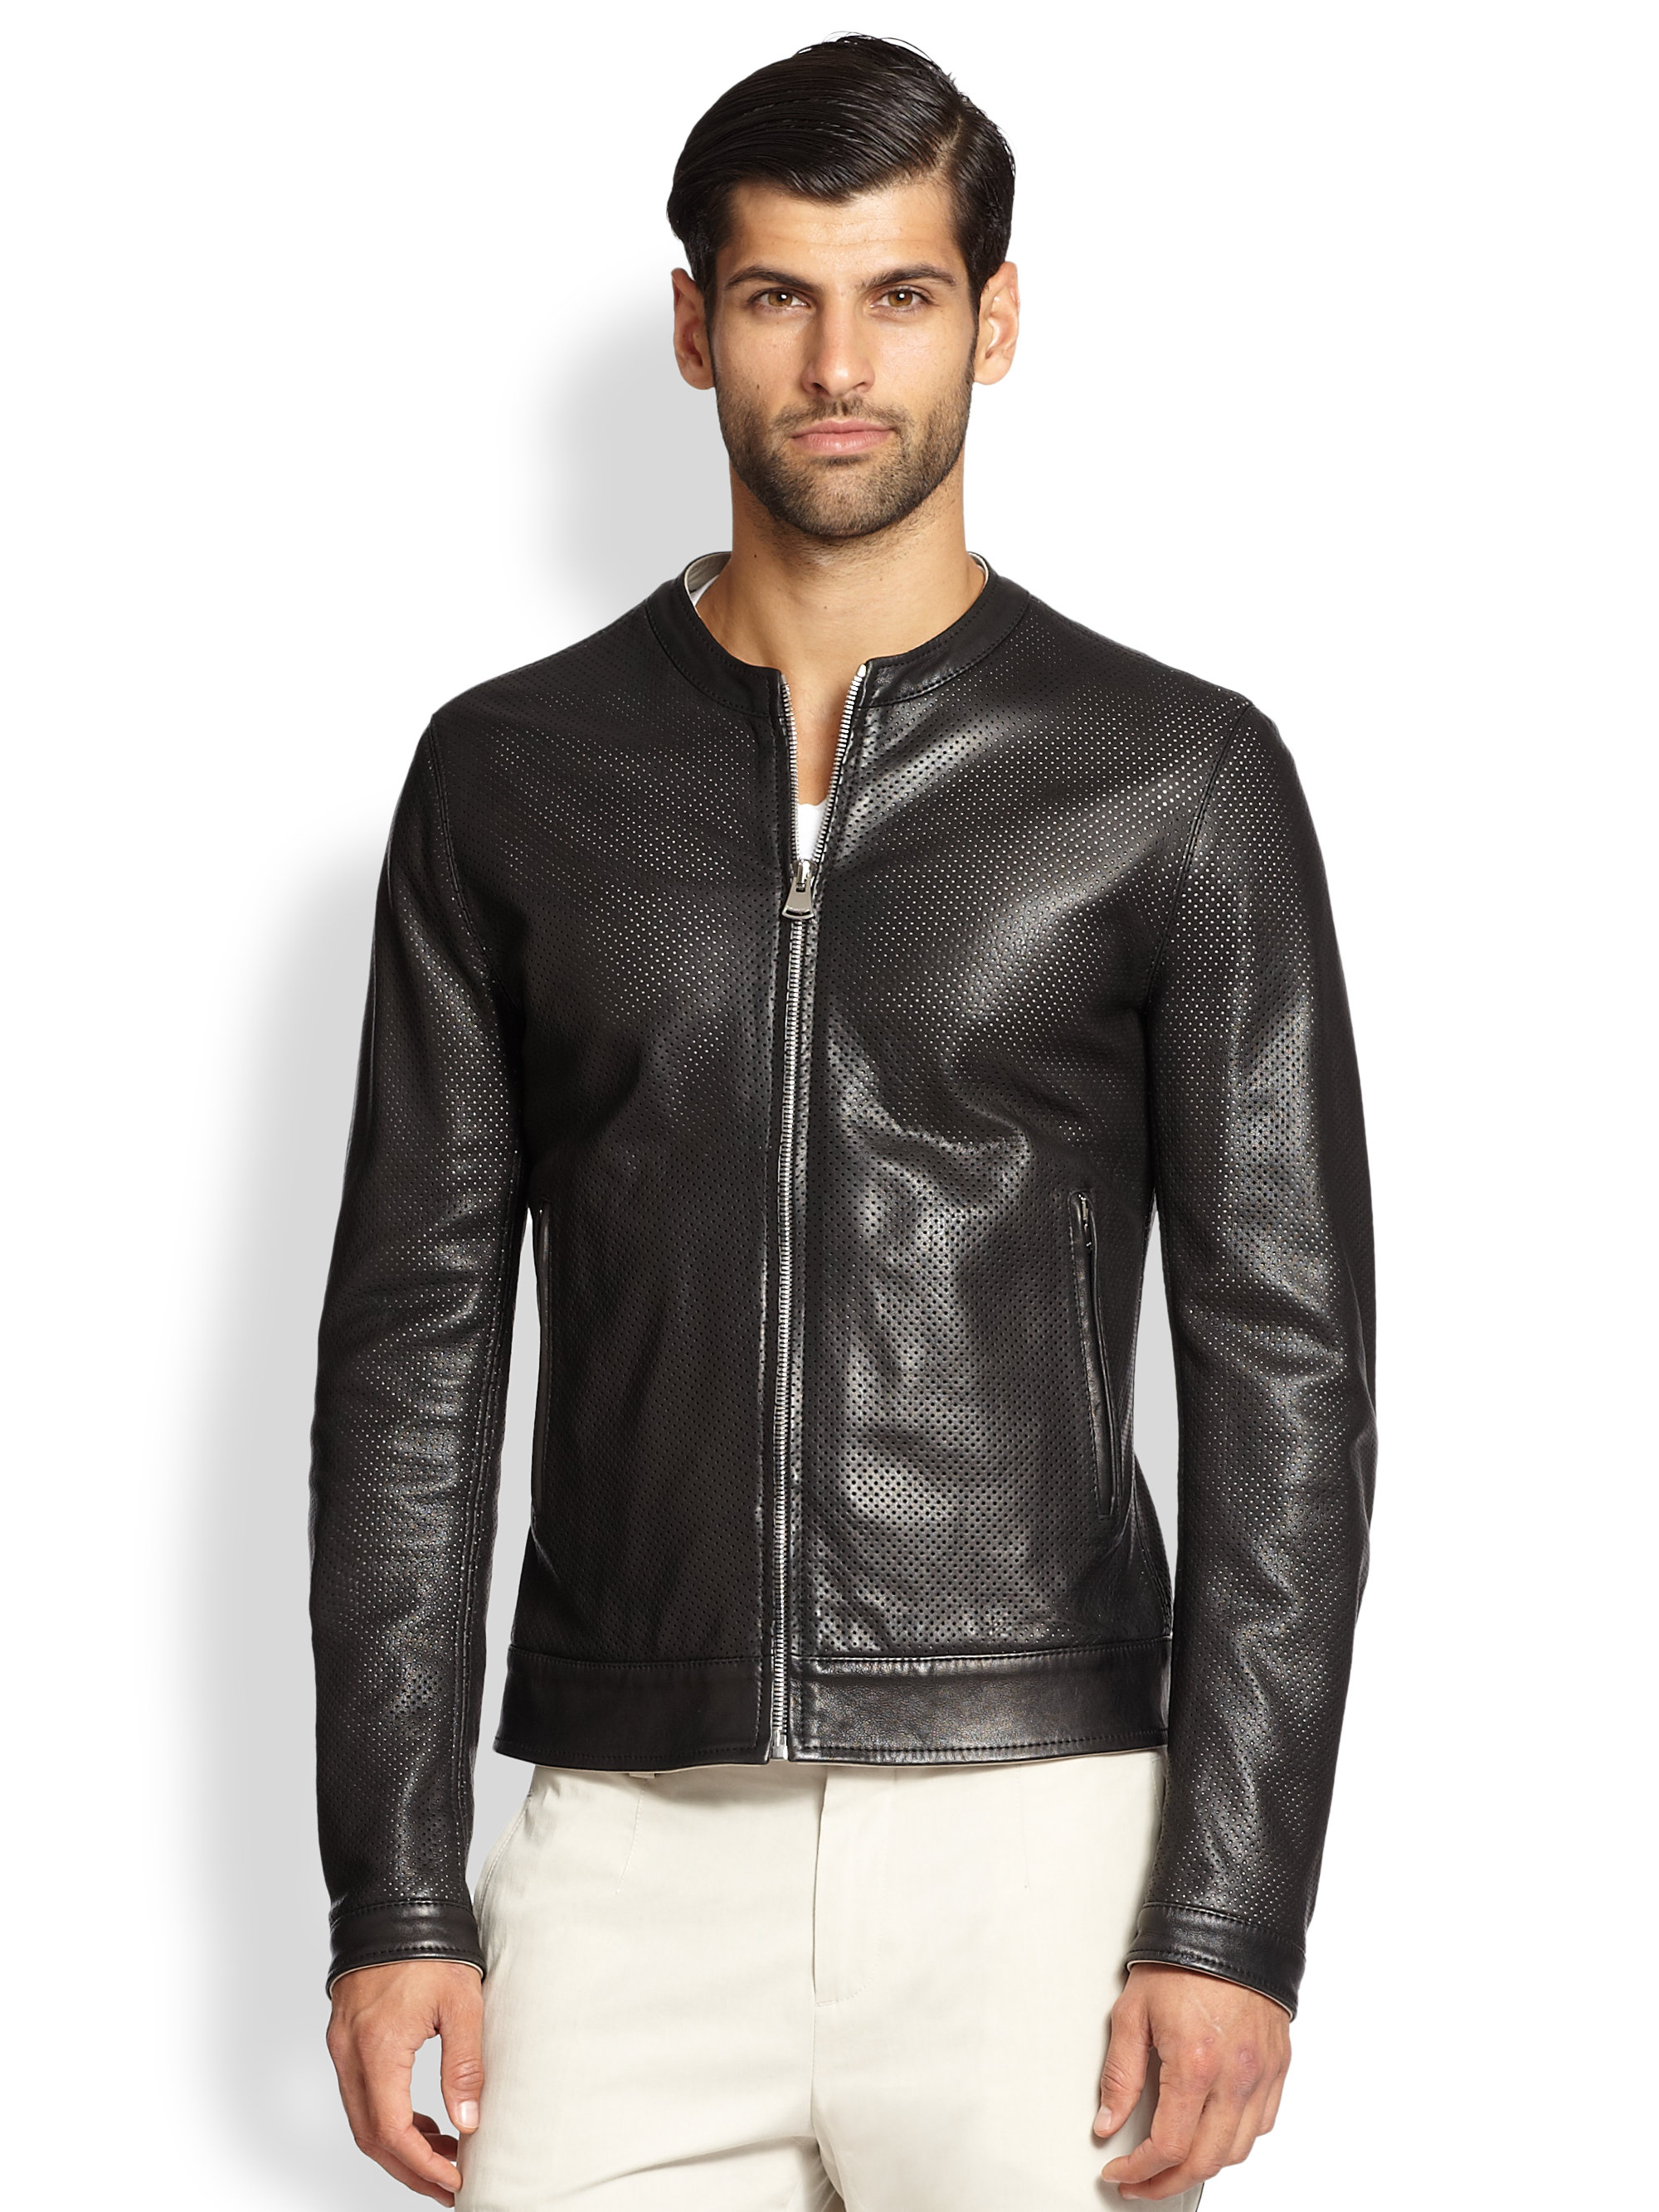 dolce gabbana perforated nappa leather jacket in black for men lyst. Black Bedroom Furniture Sets. Home Design Ideas